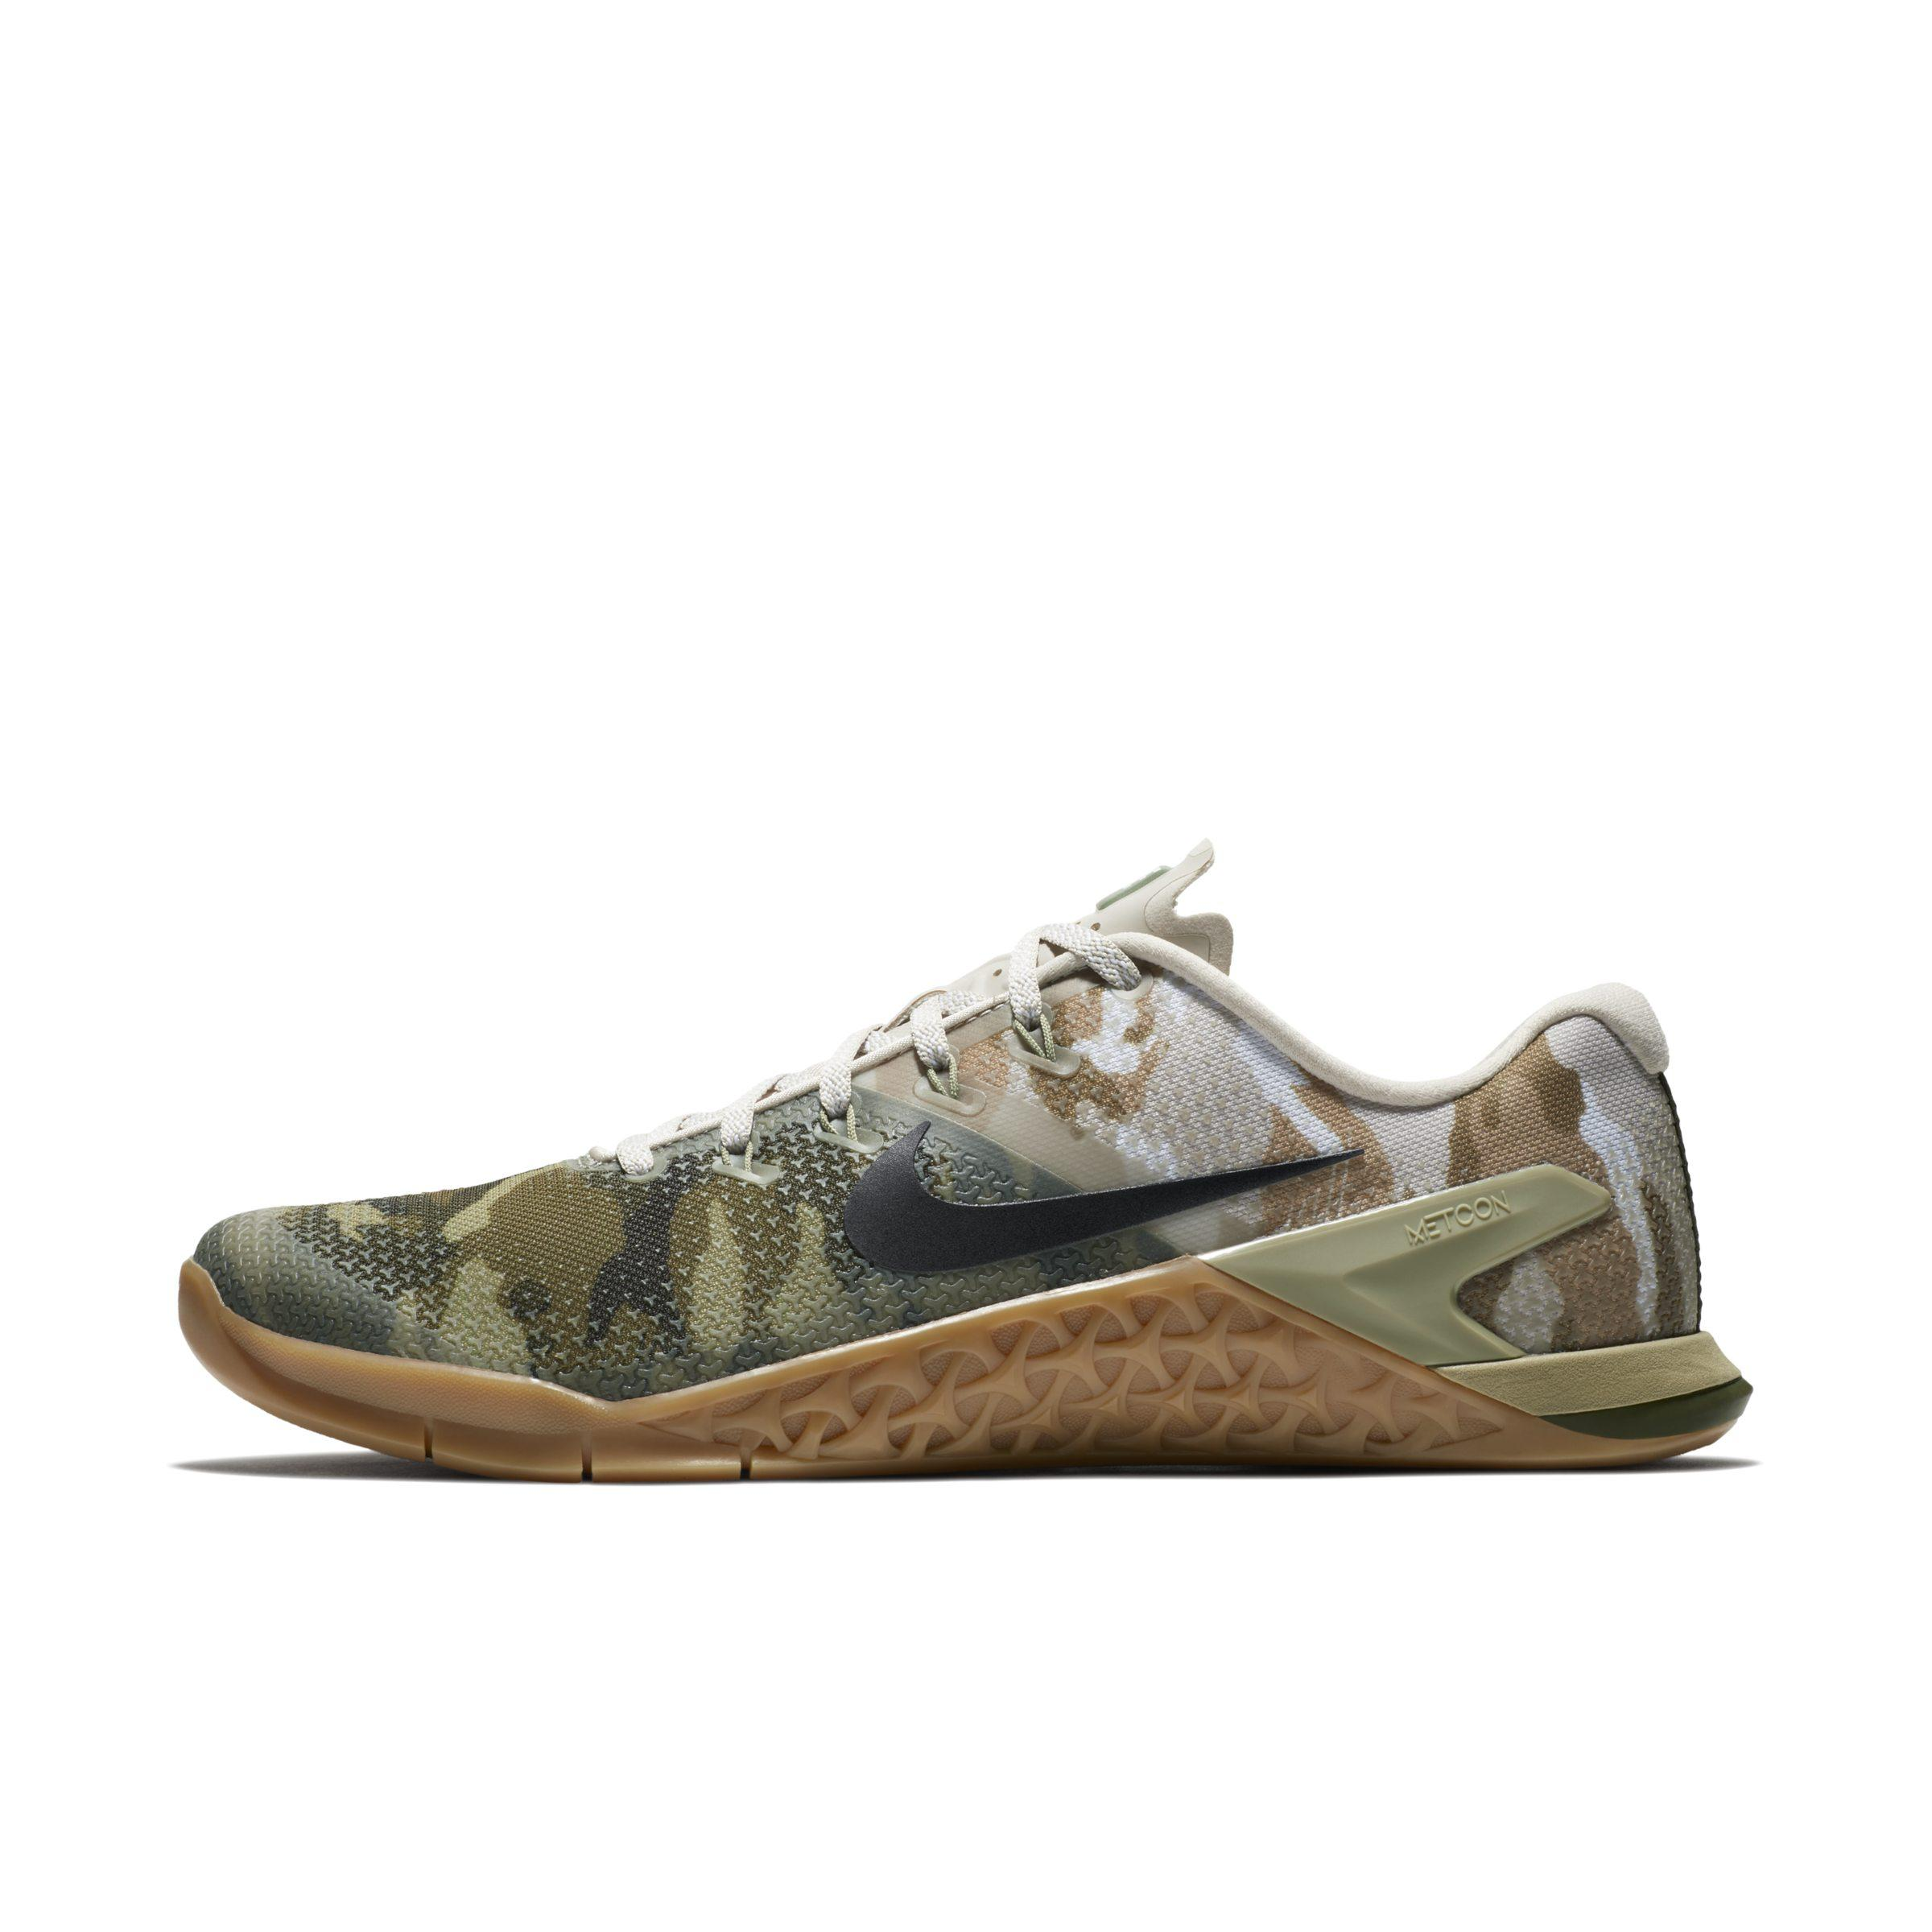 a13737d374ebc Nike Metcon 4 Cross Training weightlifting Shoe in Green for Men - Lyst